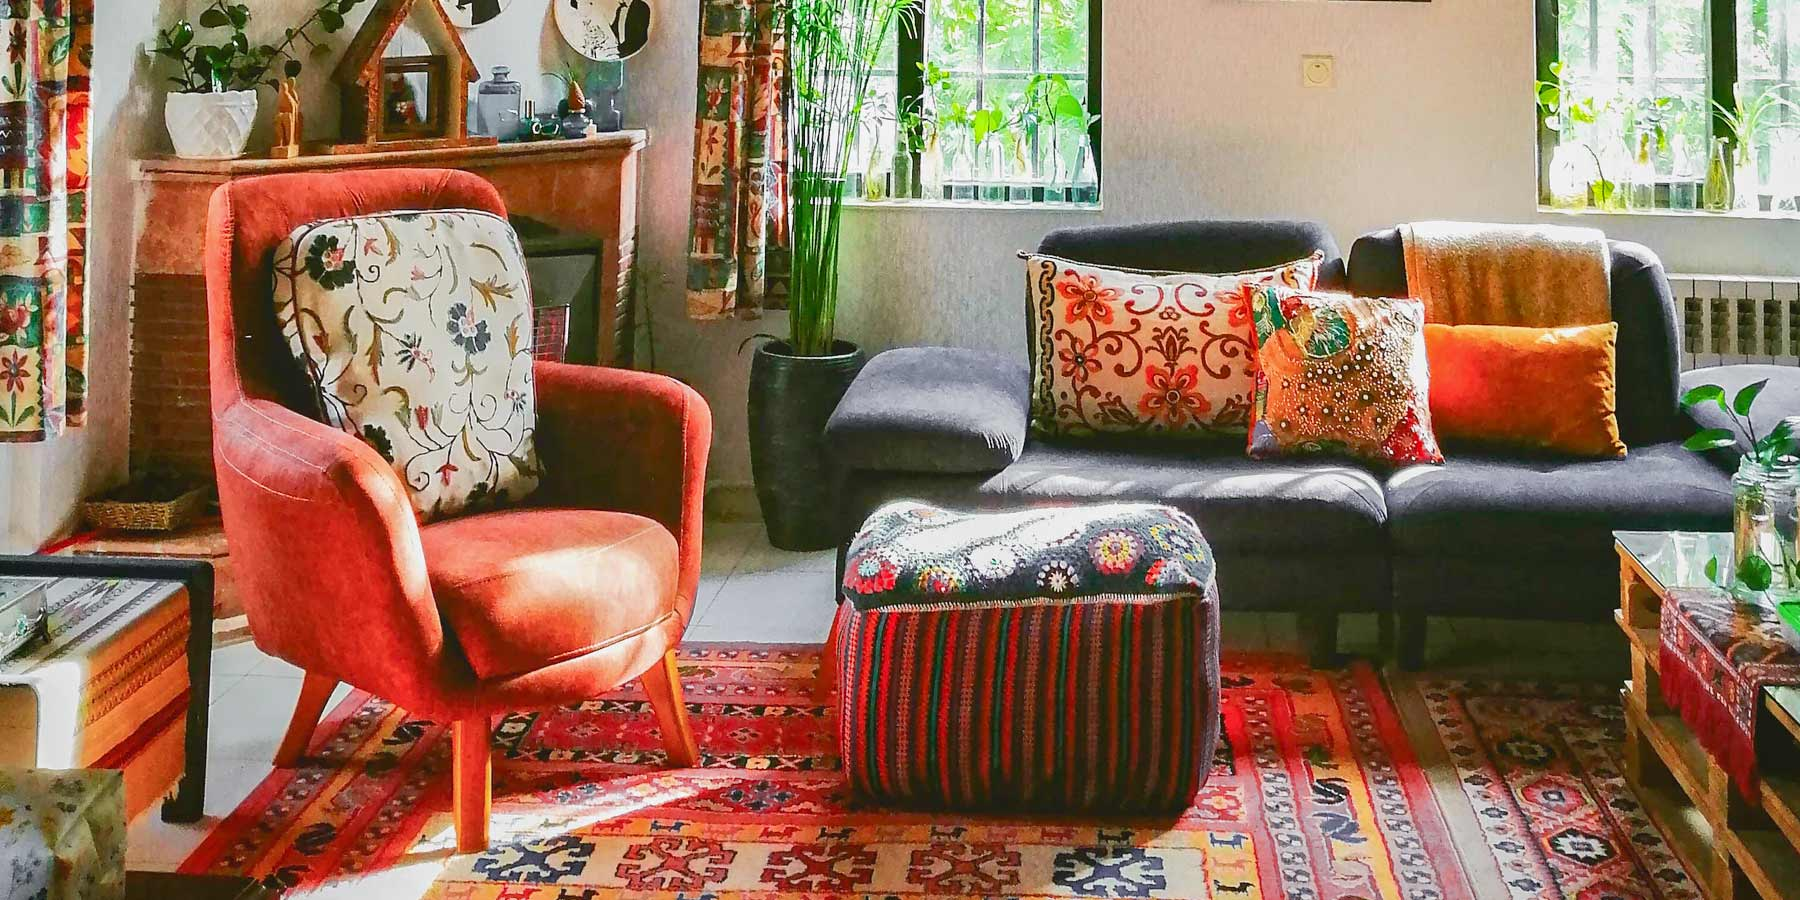 Boho Décor Ideas by RealCraft: Layered PAtterns